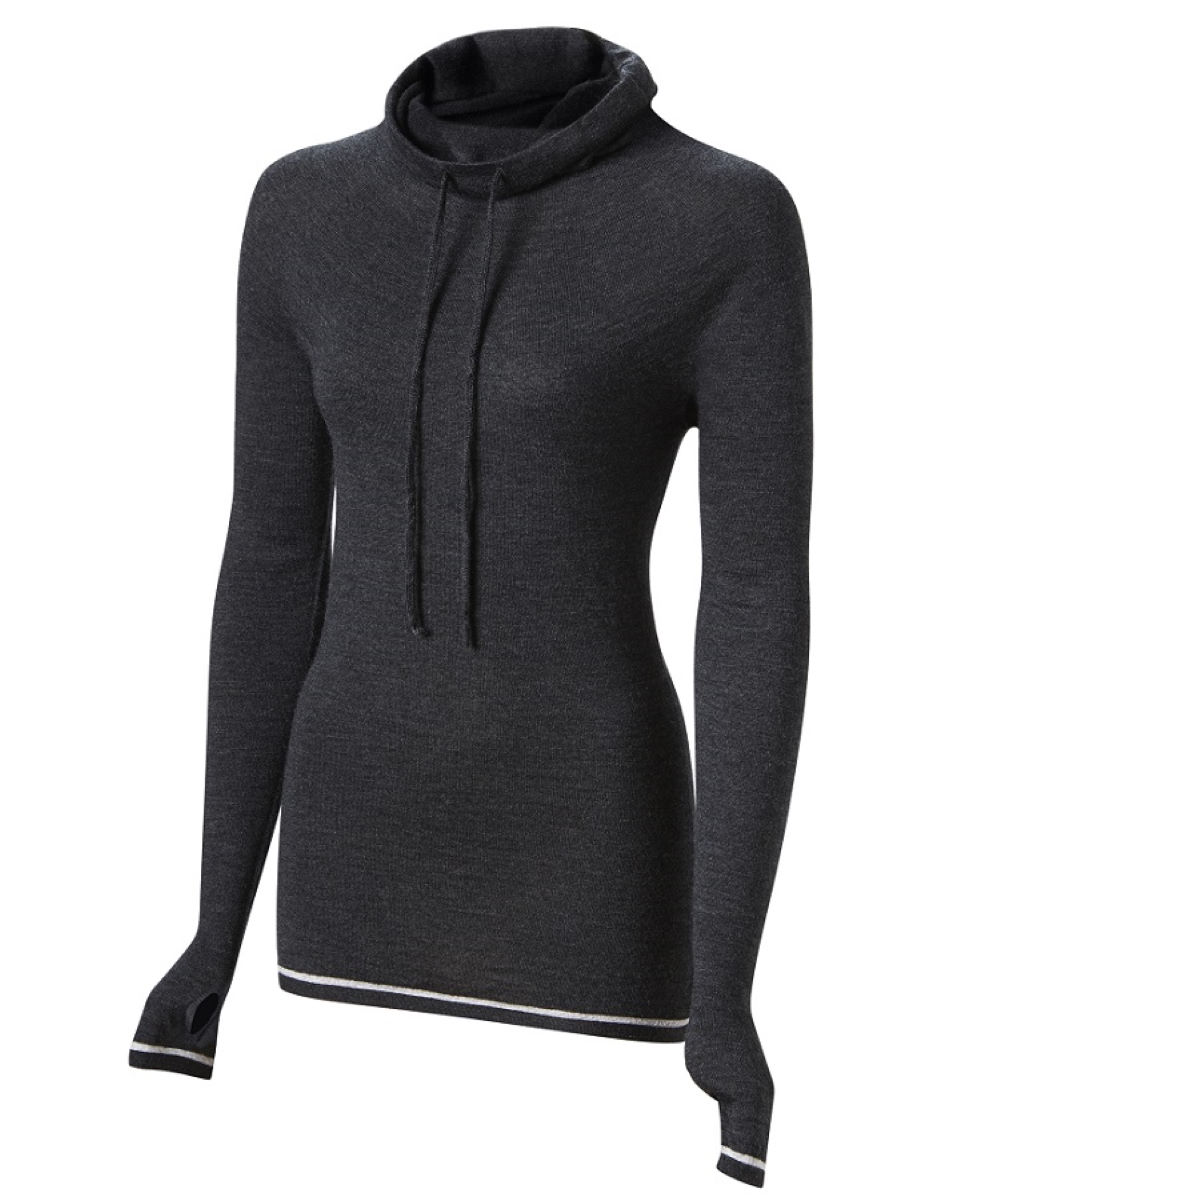 Maillot Femme FINDRA Caddon (col roulé) - XS Charcoal/Grey Marl